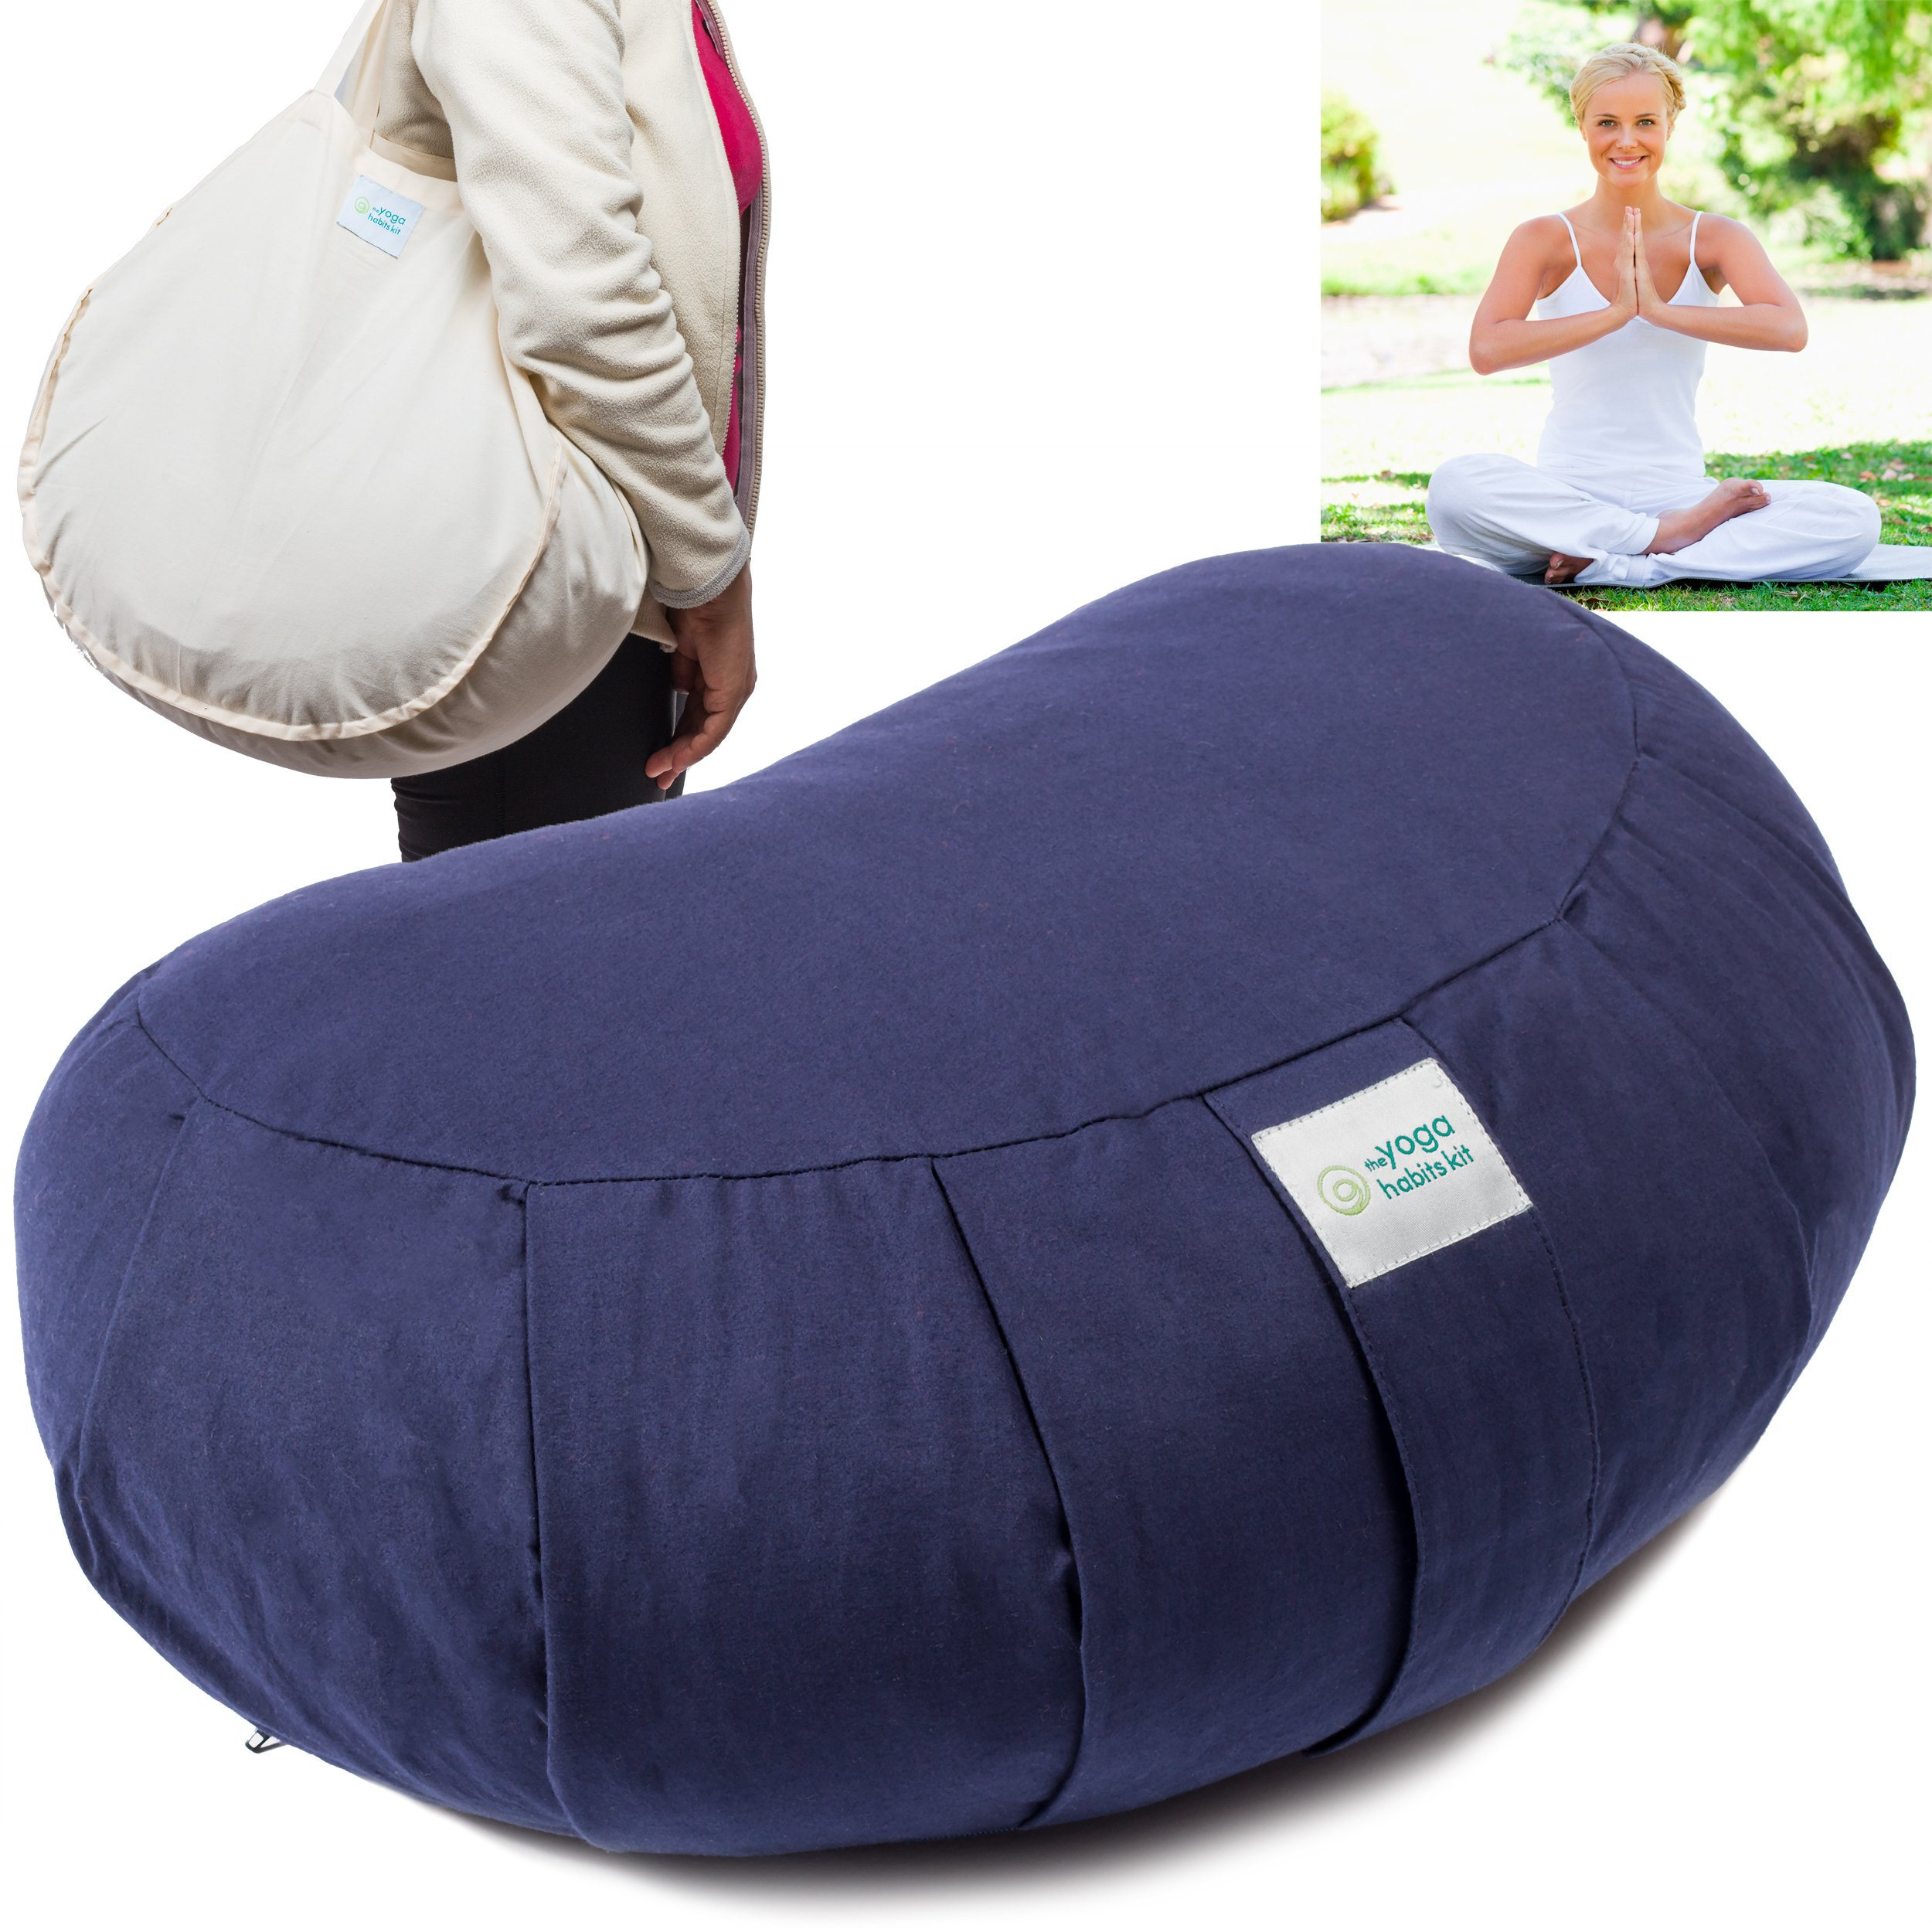 Zafu Crescent Meditation Cushion from Natural Cotton – Floor Sitting Pillow Bolster for Meditating – For Yoga Styles such as Kundalini, Pranayama, Zen or Vipassana – Free Yoga Bag by Yoga Habits Kit